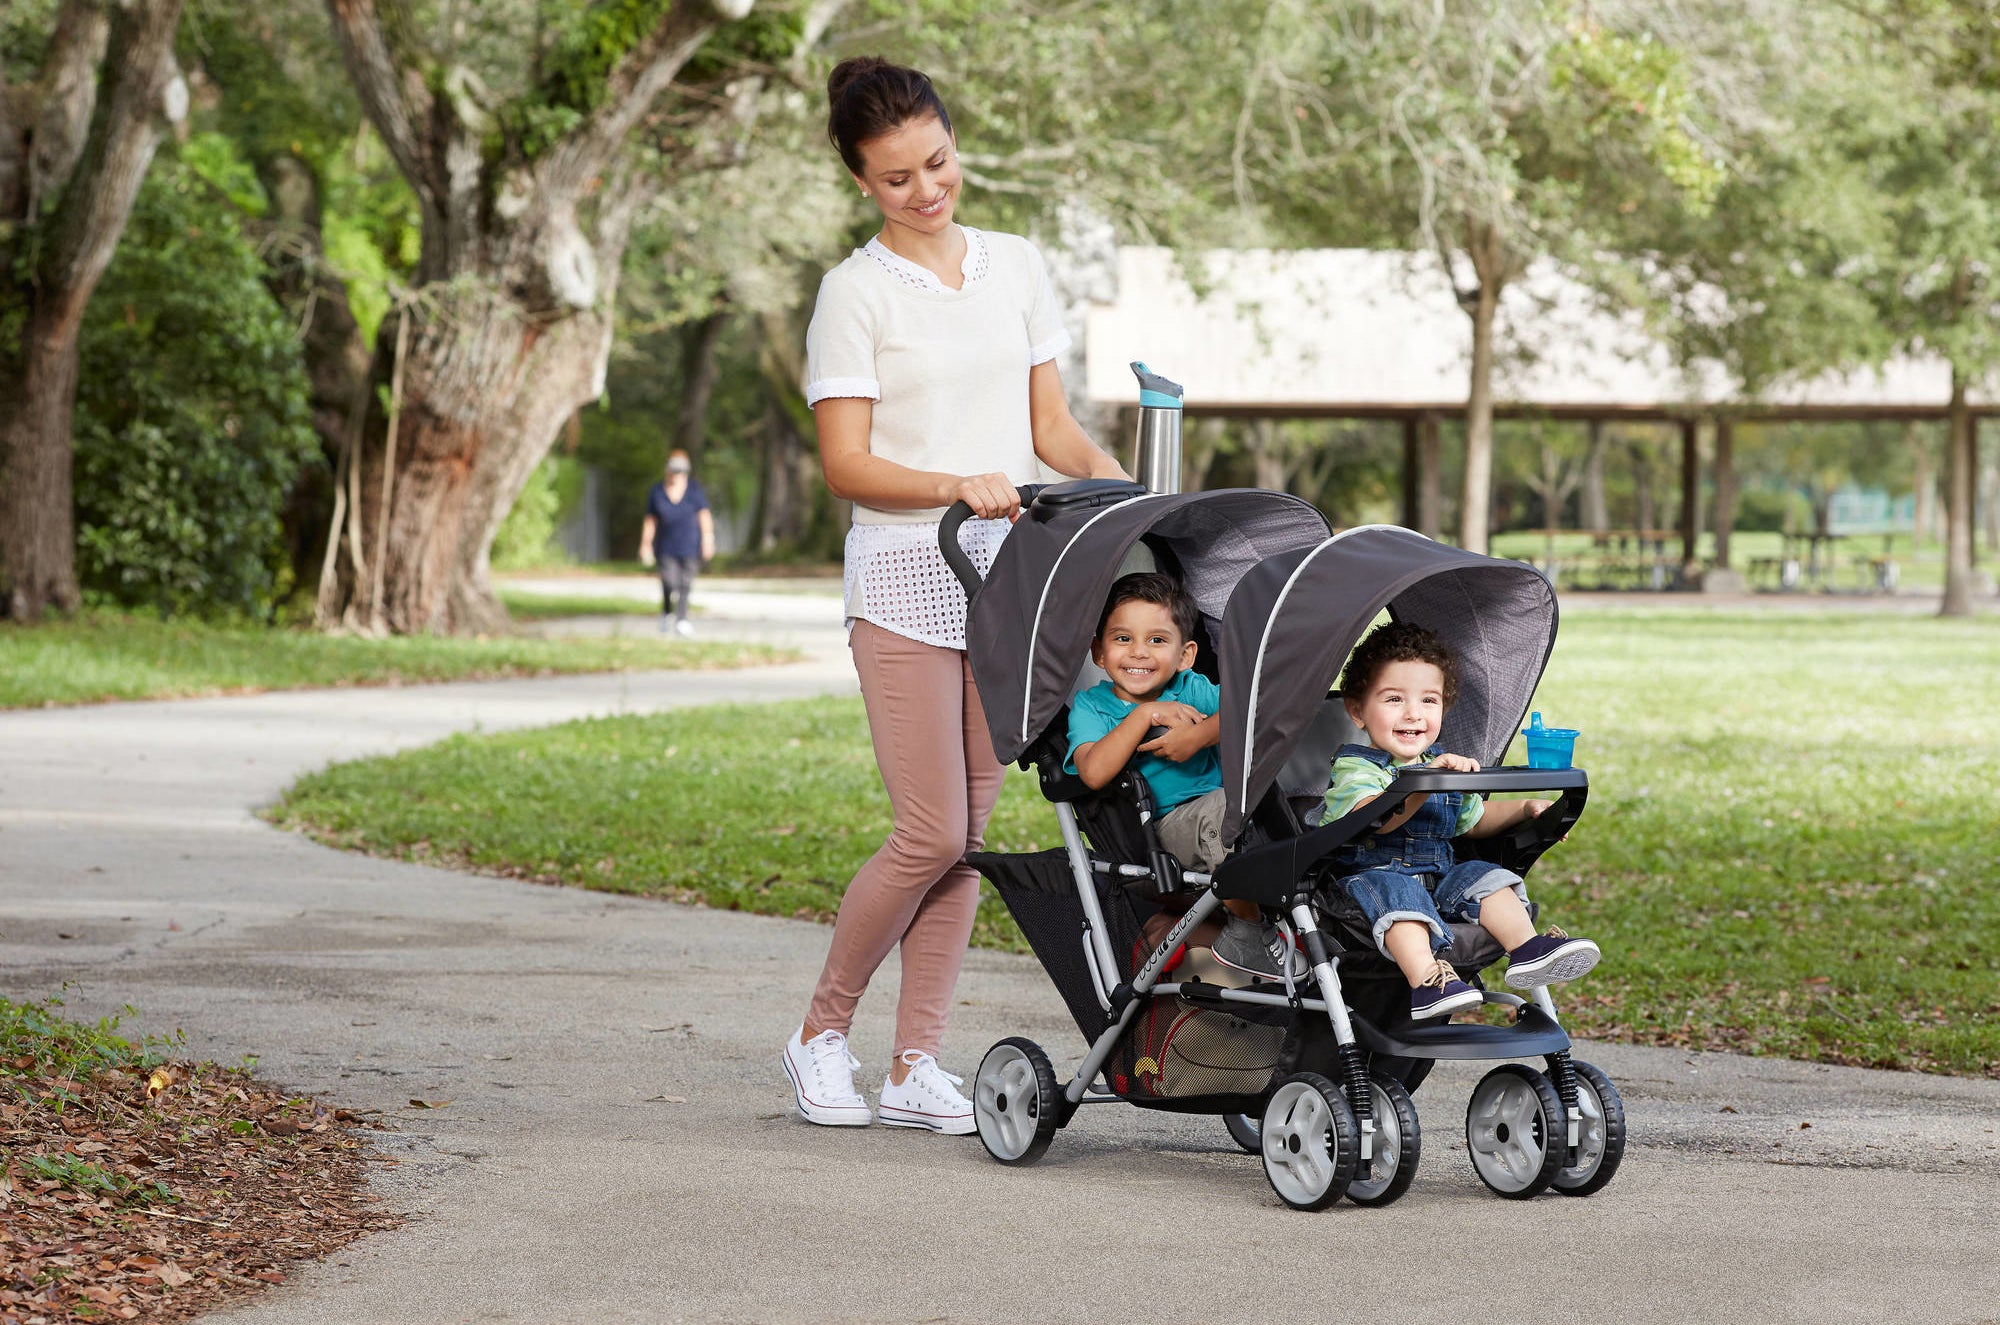 Model pushing a double stroller with two kids in it